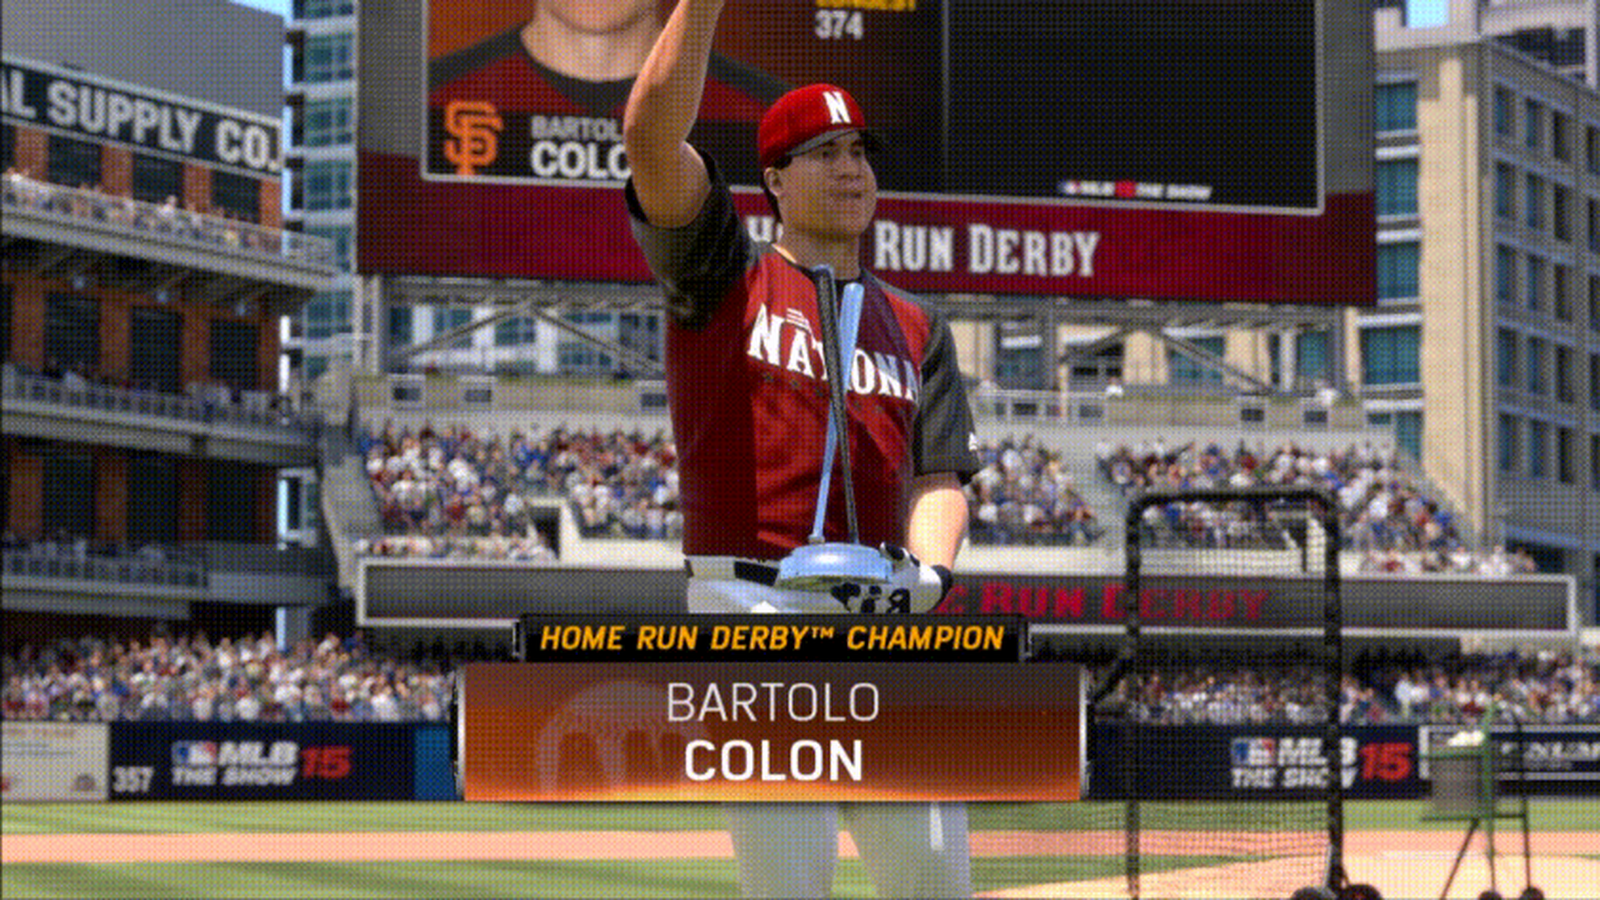 The best argument for why we need human cloning now: A guy simulates a baseball season with an entire League of Bartolo Colons. http://ift.tt/29uYyDh Love #sport follow #sports on @cutephonecases